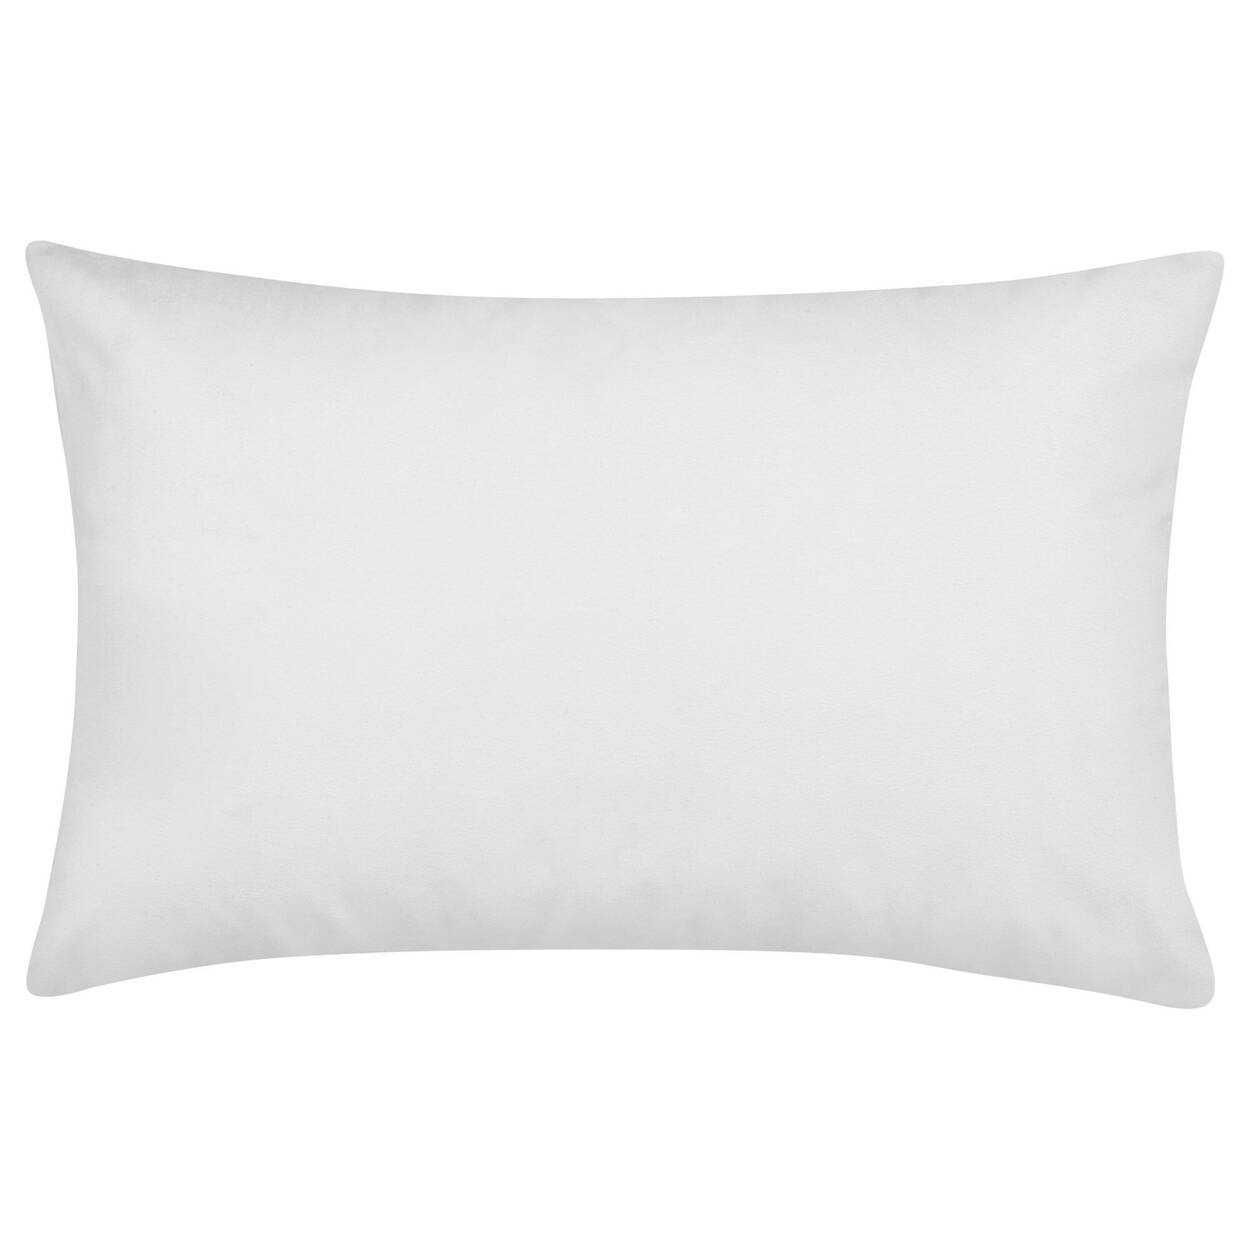 "Lora Decorative Lumbar Pillow 13"" x 20"""